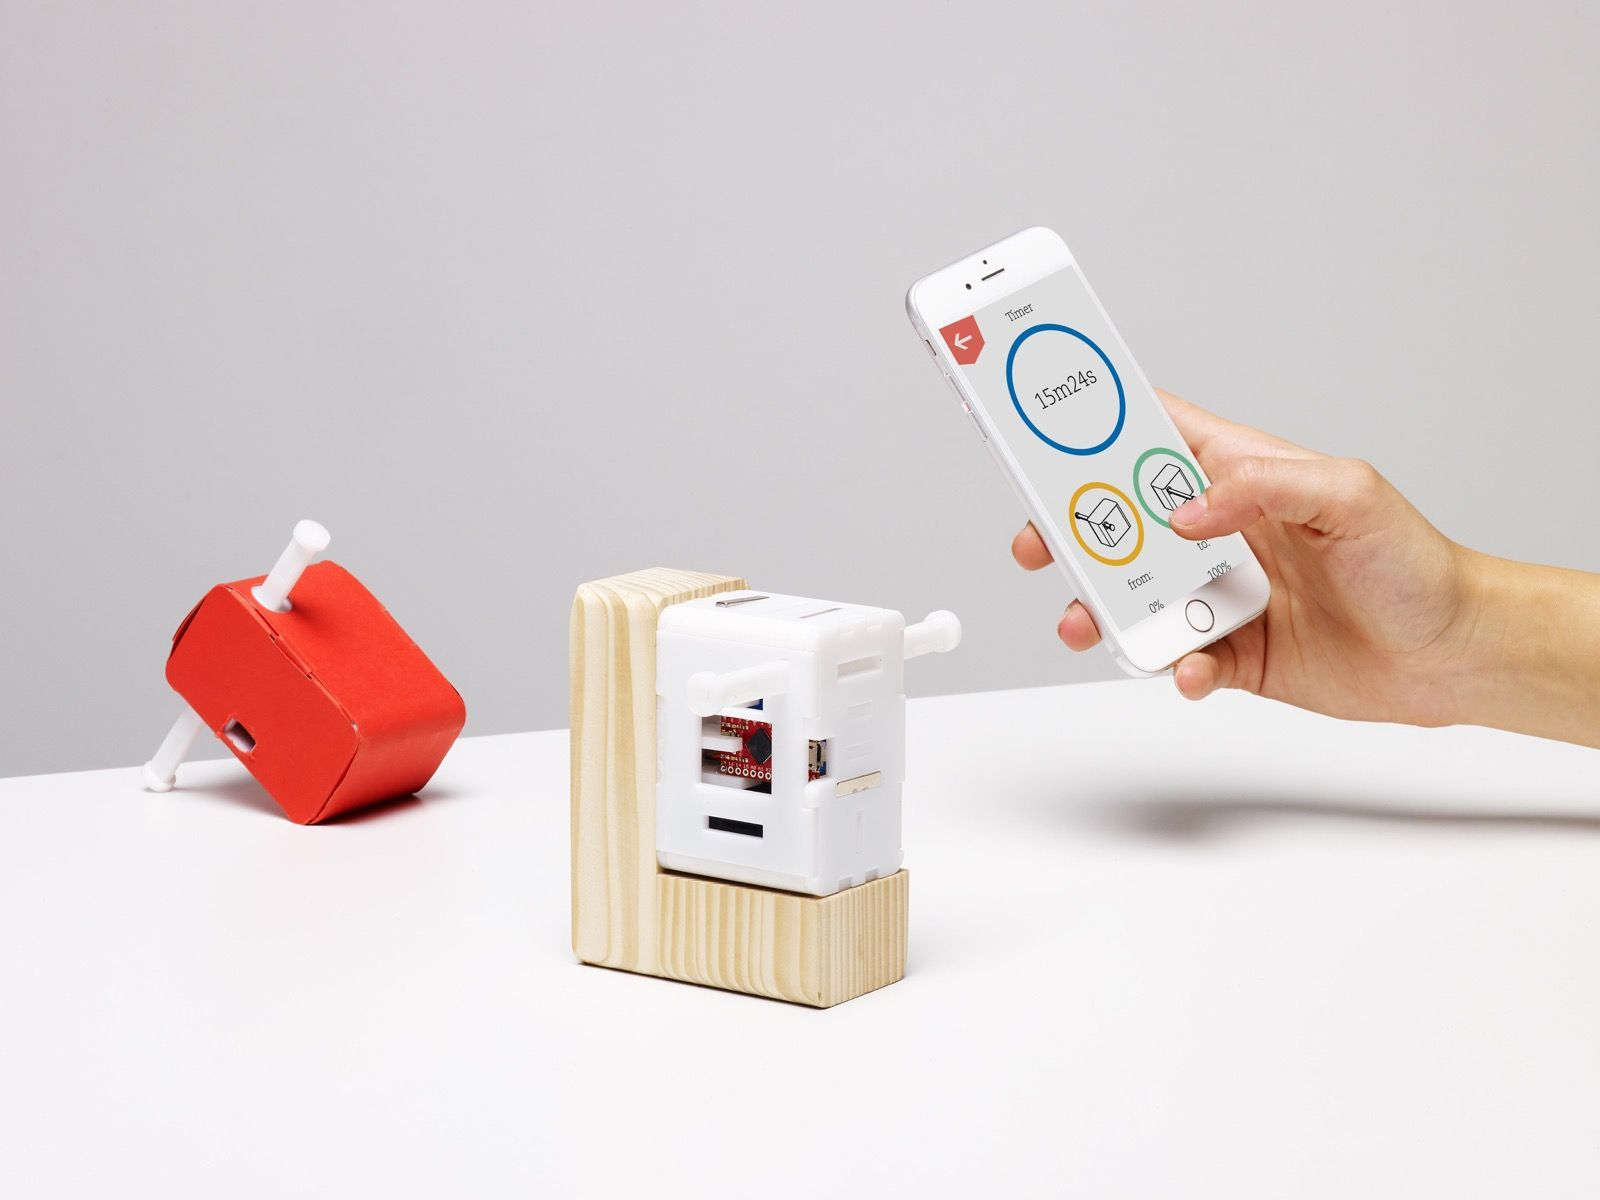 Nelson Tiny Device That Helps Push A Switch On Everyday Objects Interactive Design Everyday Objects Objects